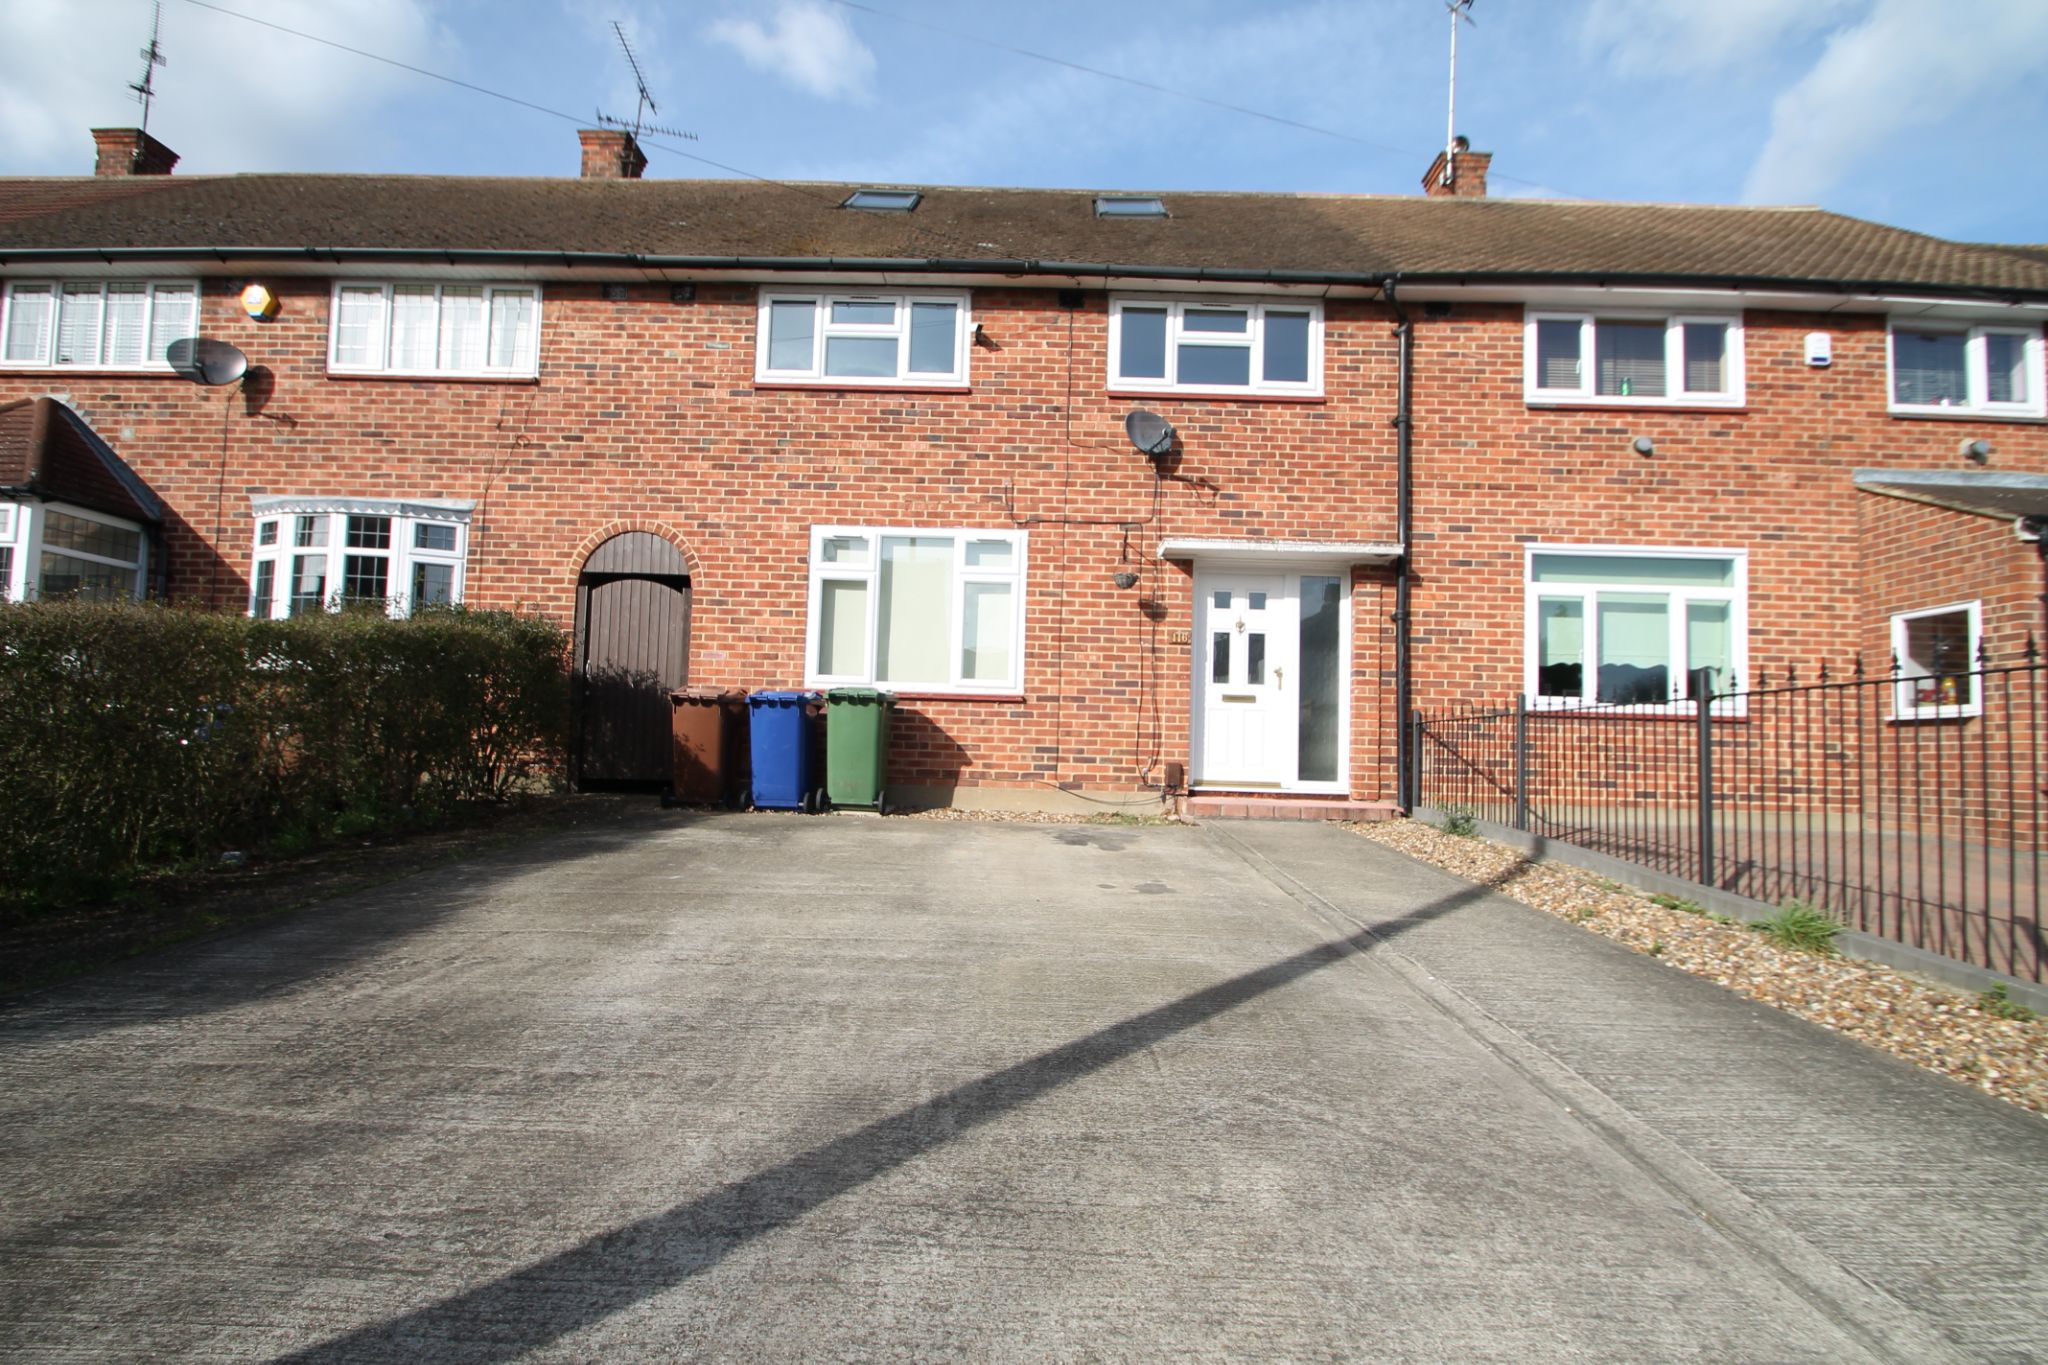 4 Bedroom Mid Terraced House For Sale - Exterior